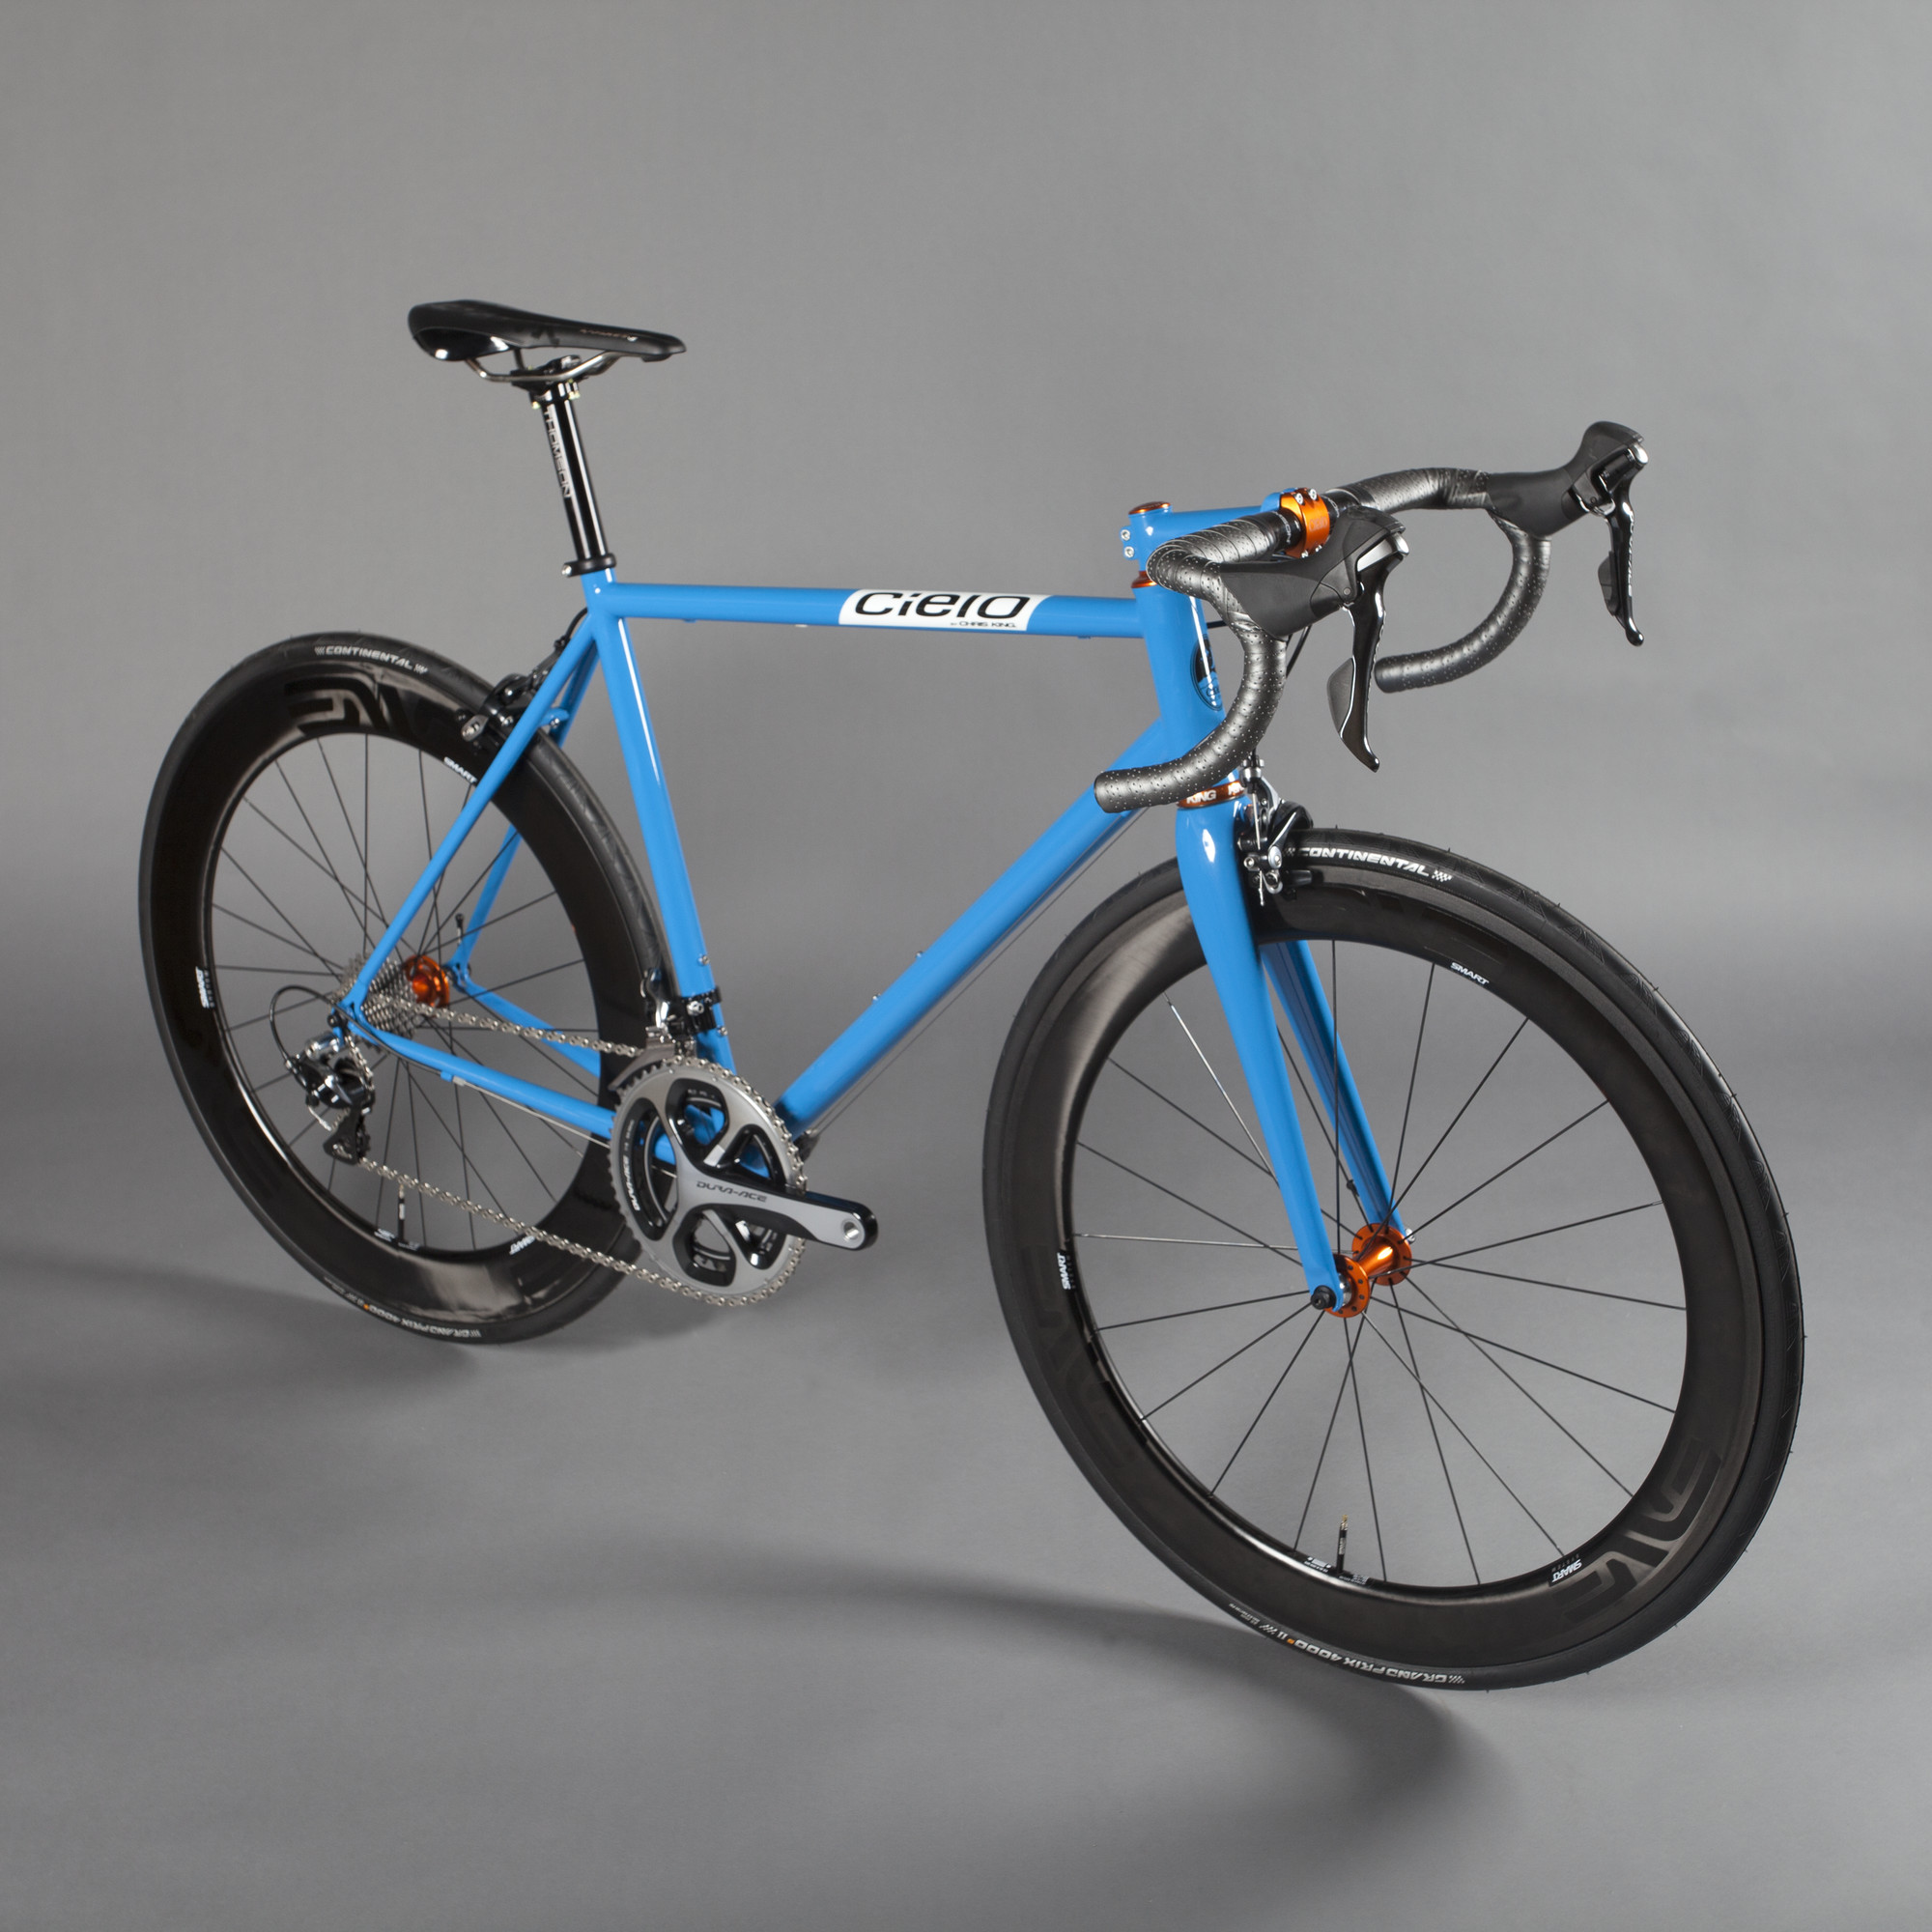 RS913_cielo_roadracer_azul_full-lpr